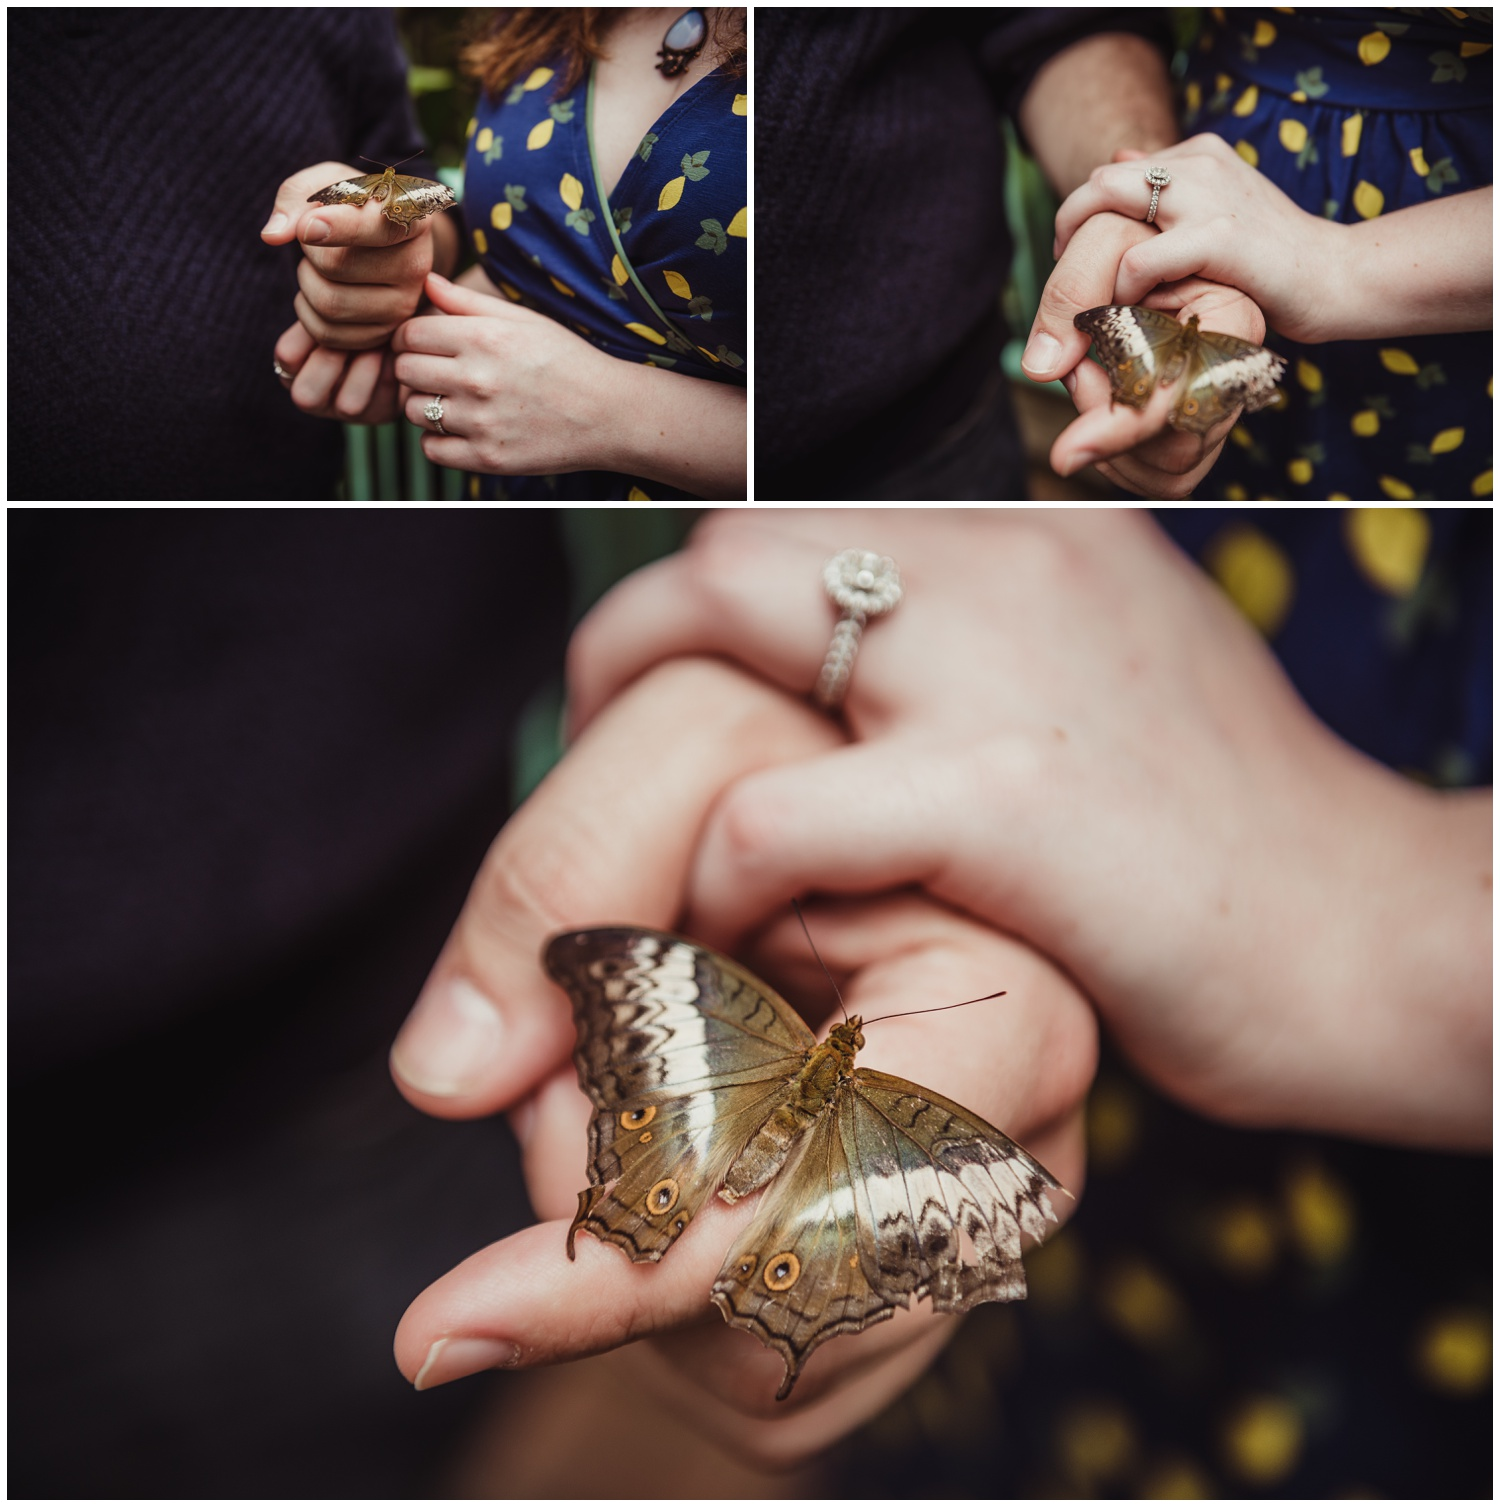 A butterfly lands perfectly on the couples' fingers during their engagement photo session with Rose Trail Images at the Butterfly House in Durham.